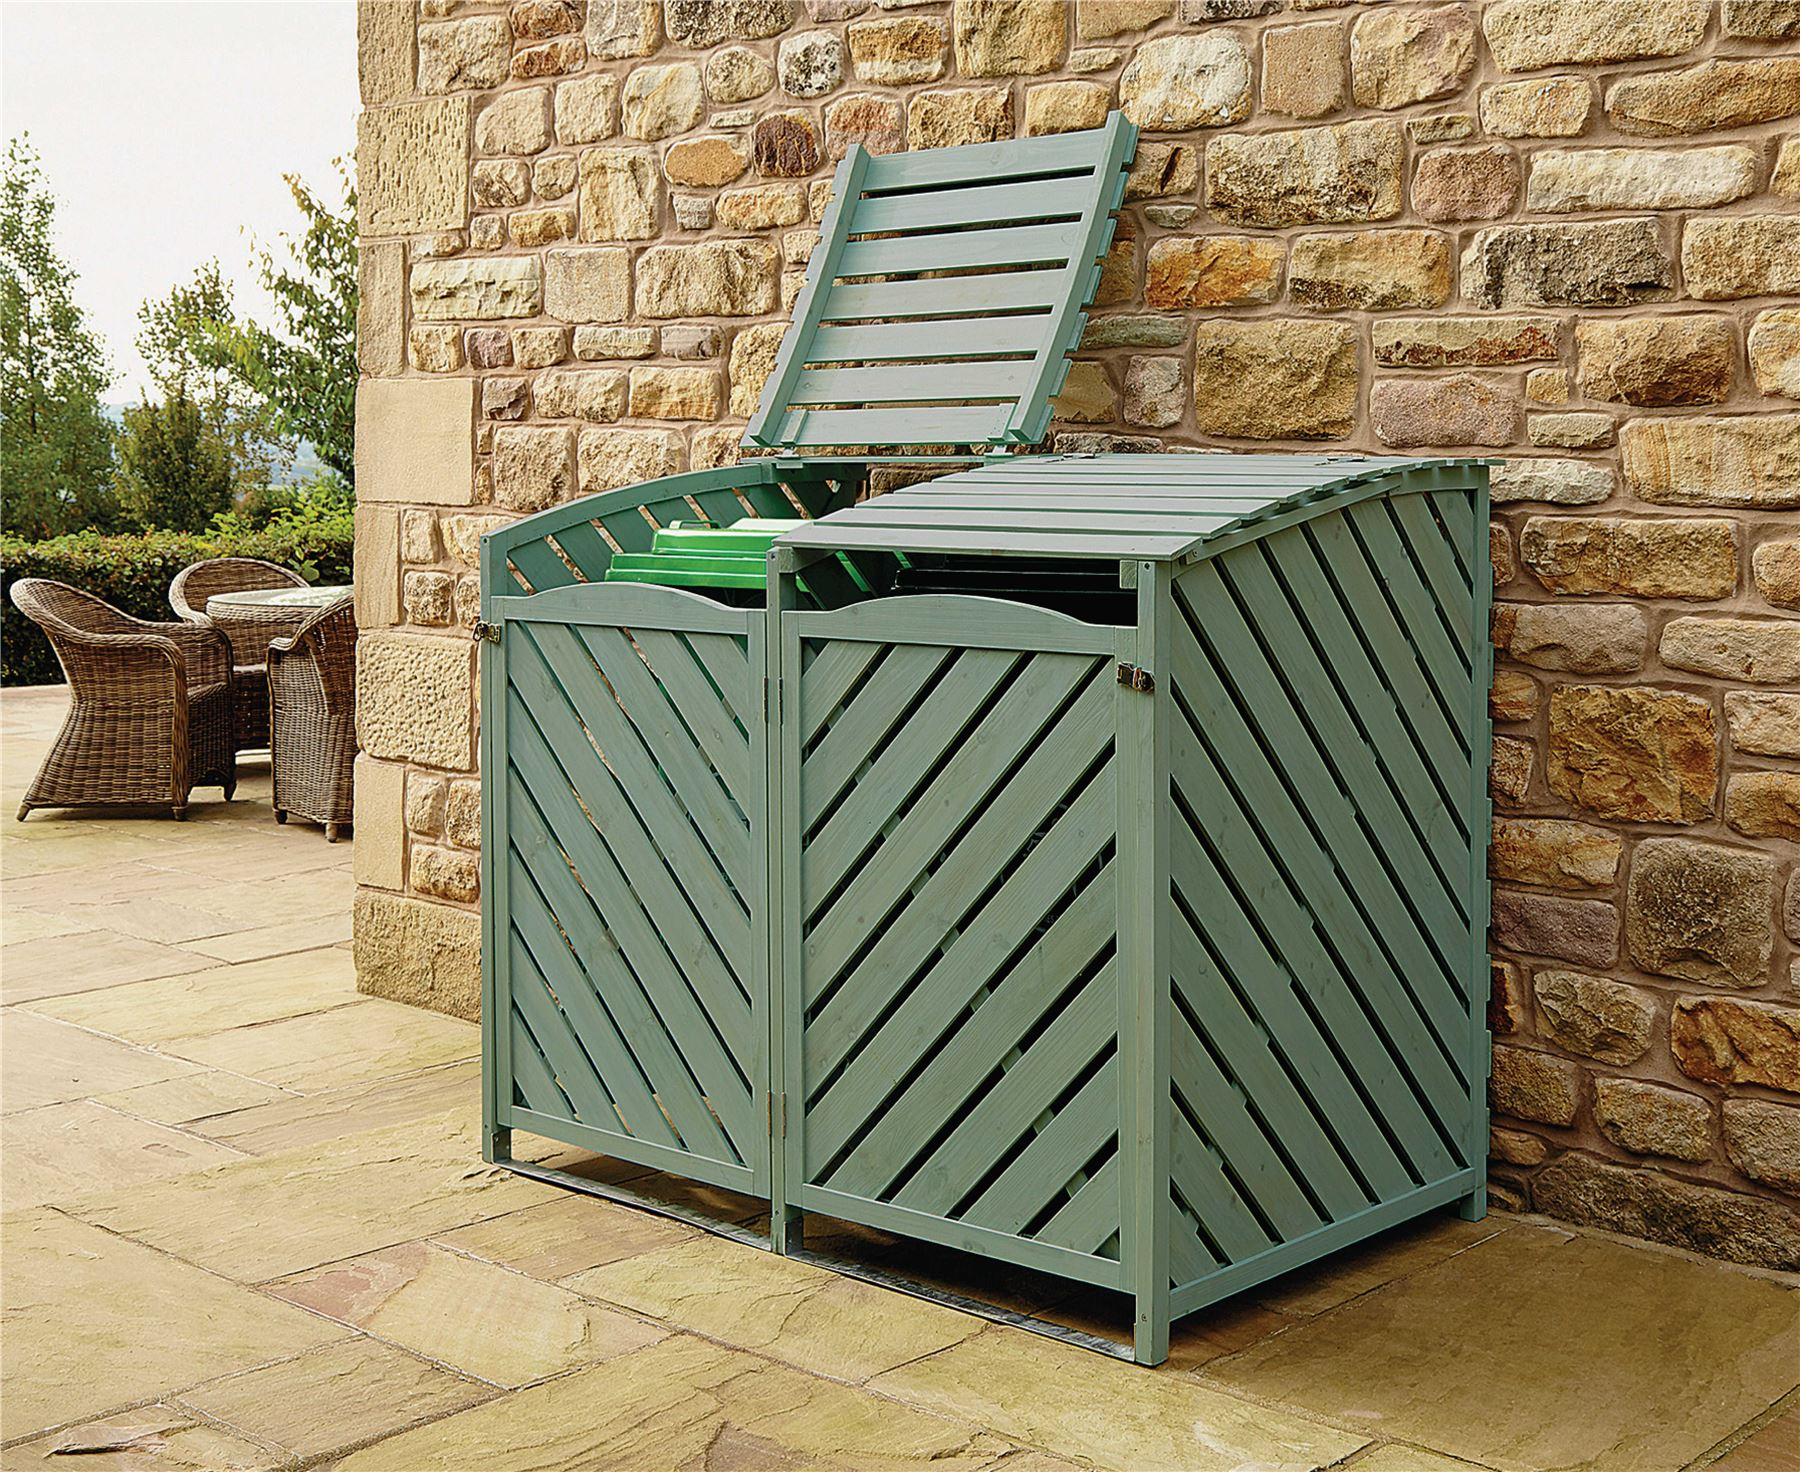 double wheelie bin store outdoor cover recycling storage